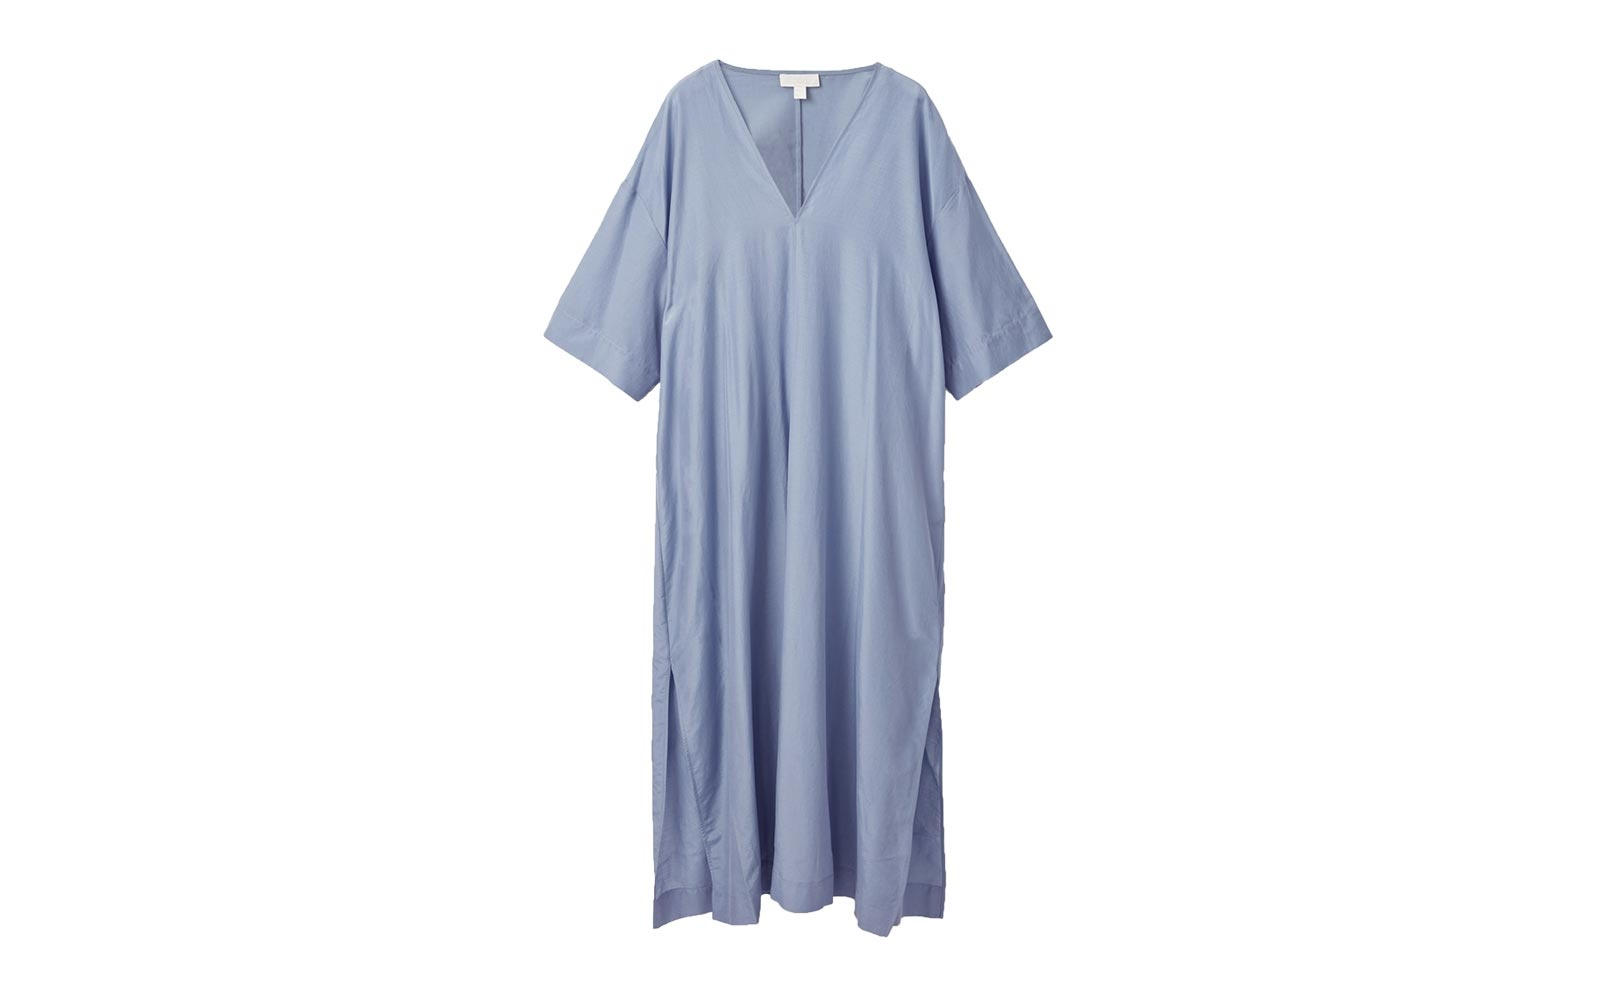 Cos caftan dress